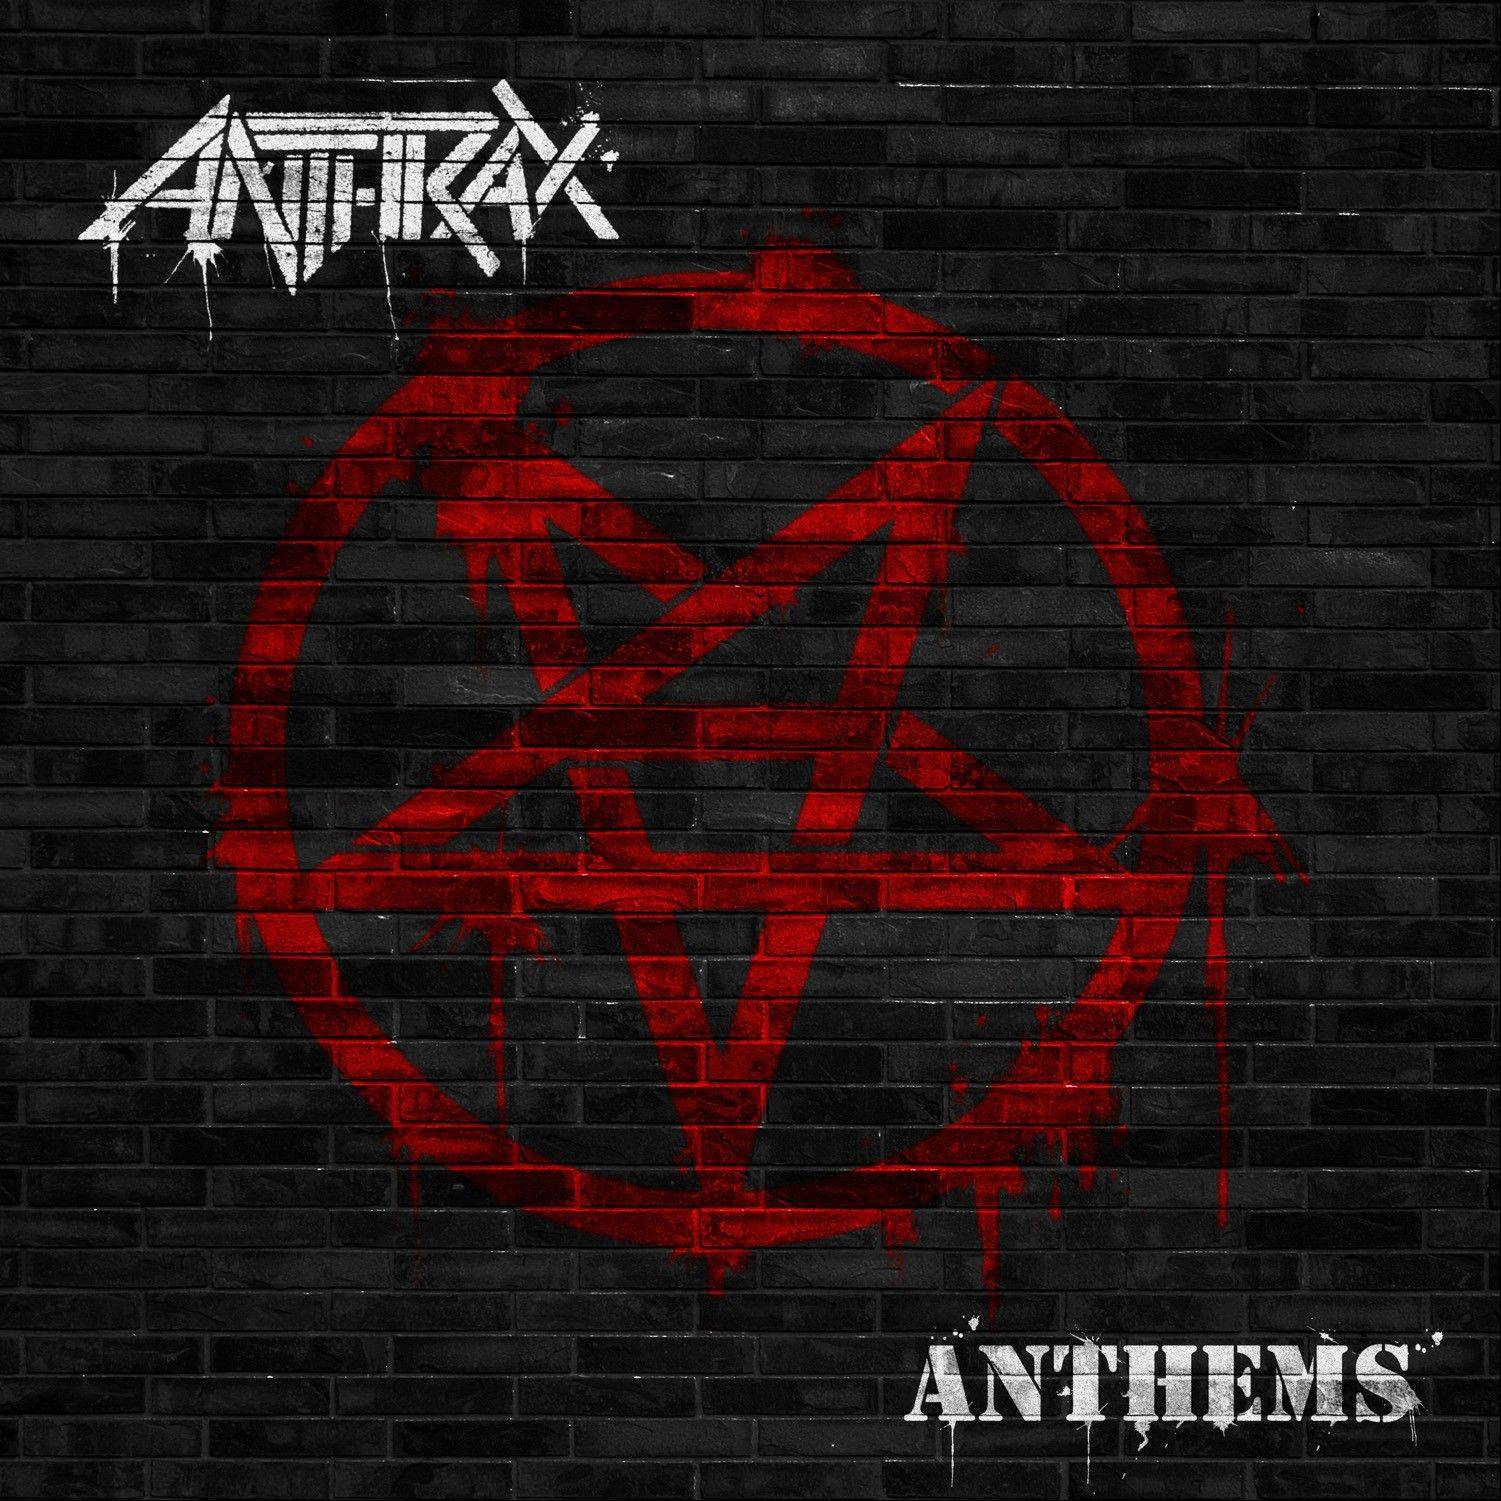 """Anthems"" by Anthrax"